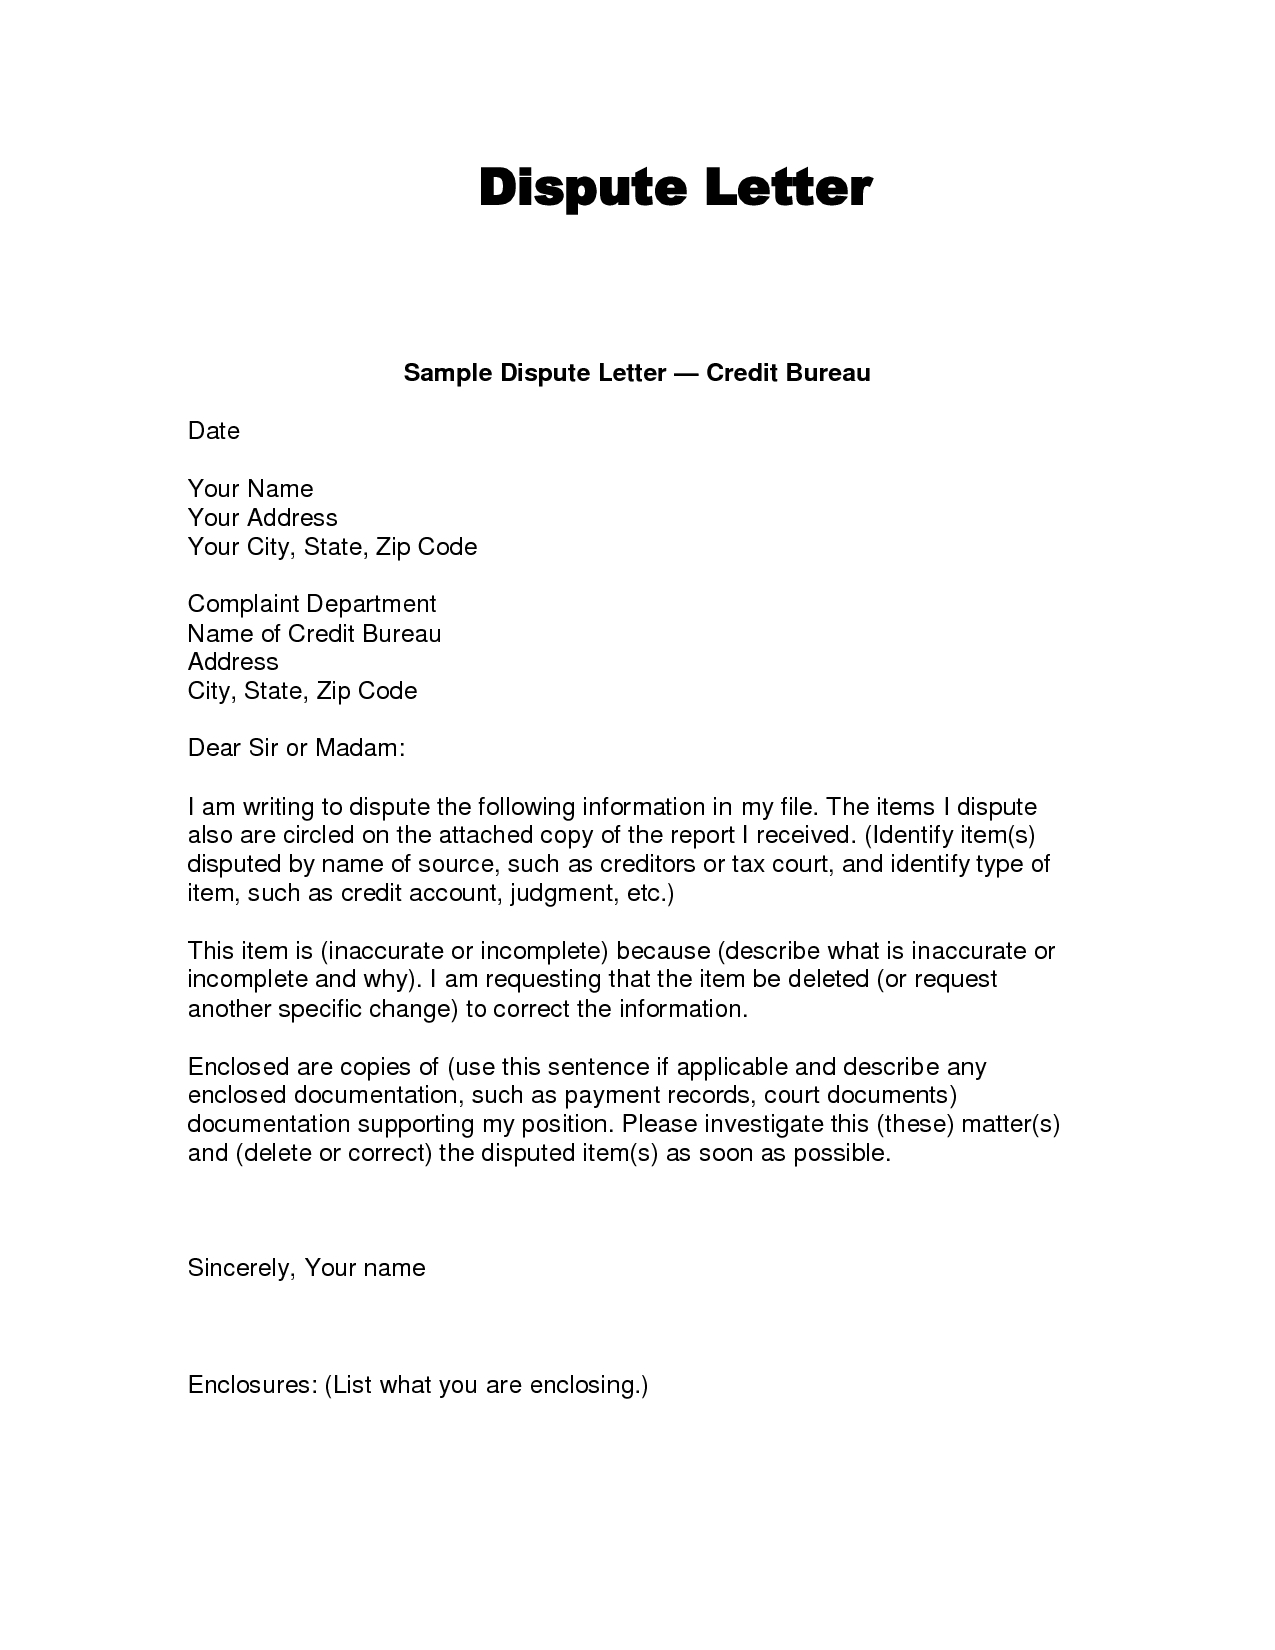 credit dispute letter template example-credit dispute letter templates 4-n